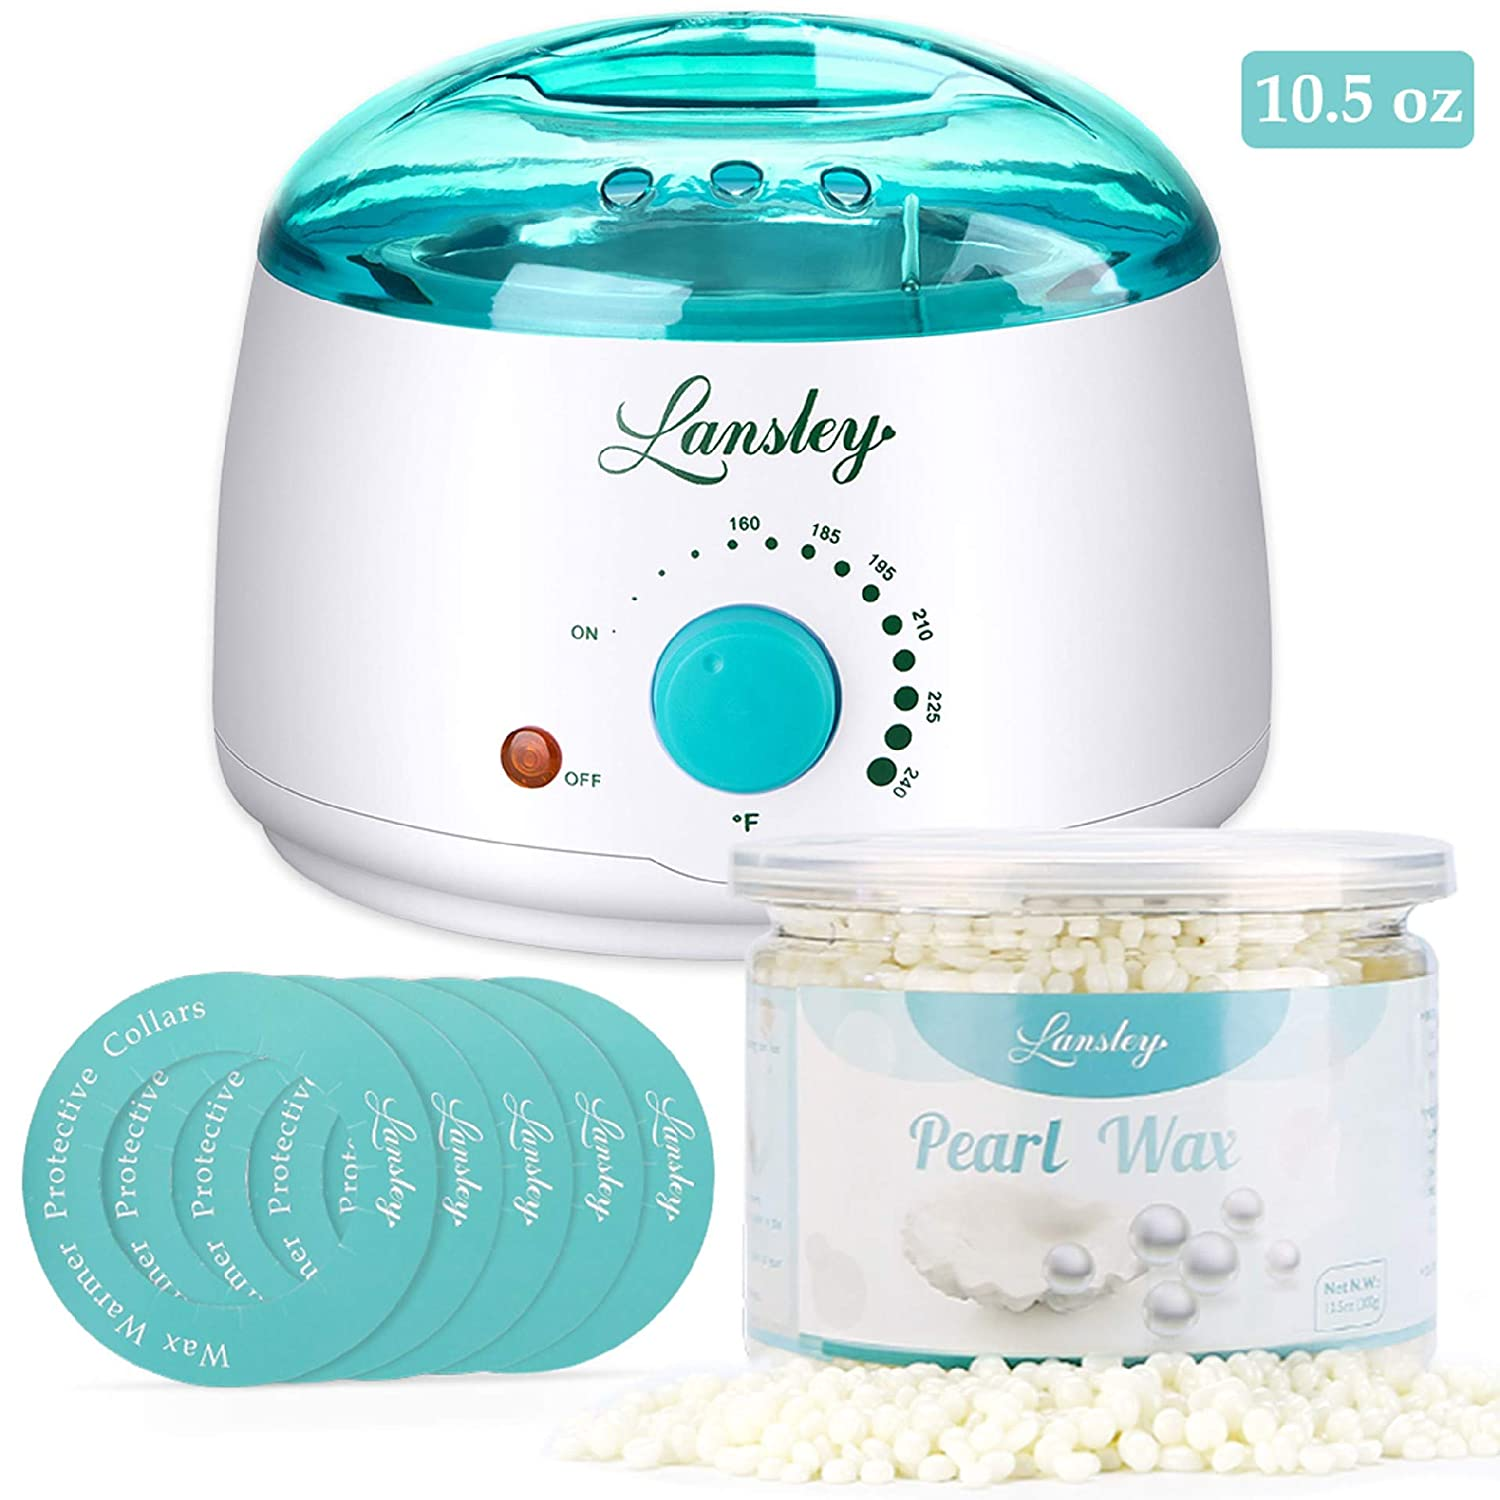 Wax Warmer, Lansley Hair Removal Waxing Kit Wax Heater Melts Wax Beans in Minutes, Rapid Depilatory Machine for Face, Body, Legs, Bikini Area with 10.5 oz Pearl Hard Wax (At-Home Waxing) lifestance